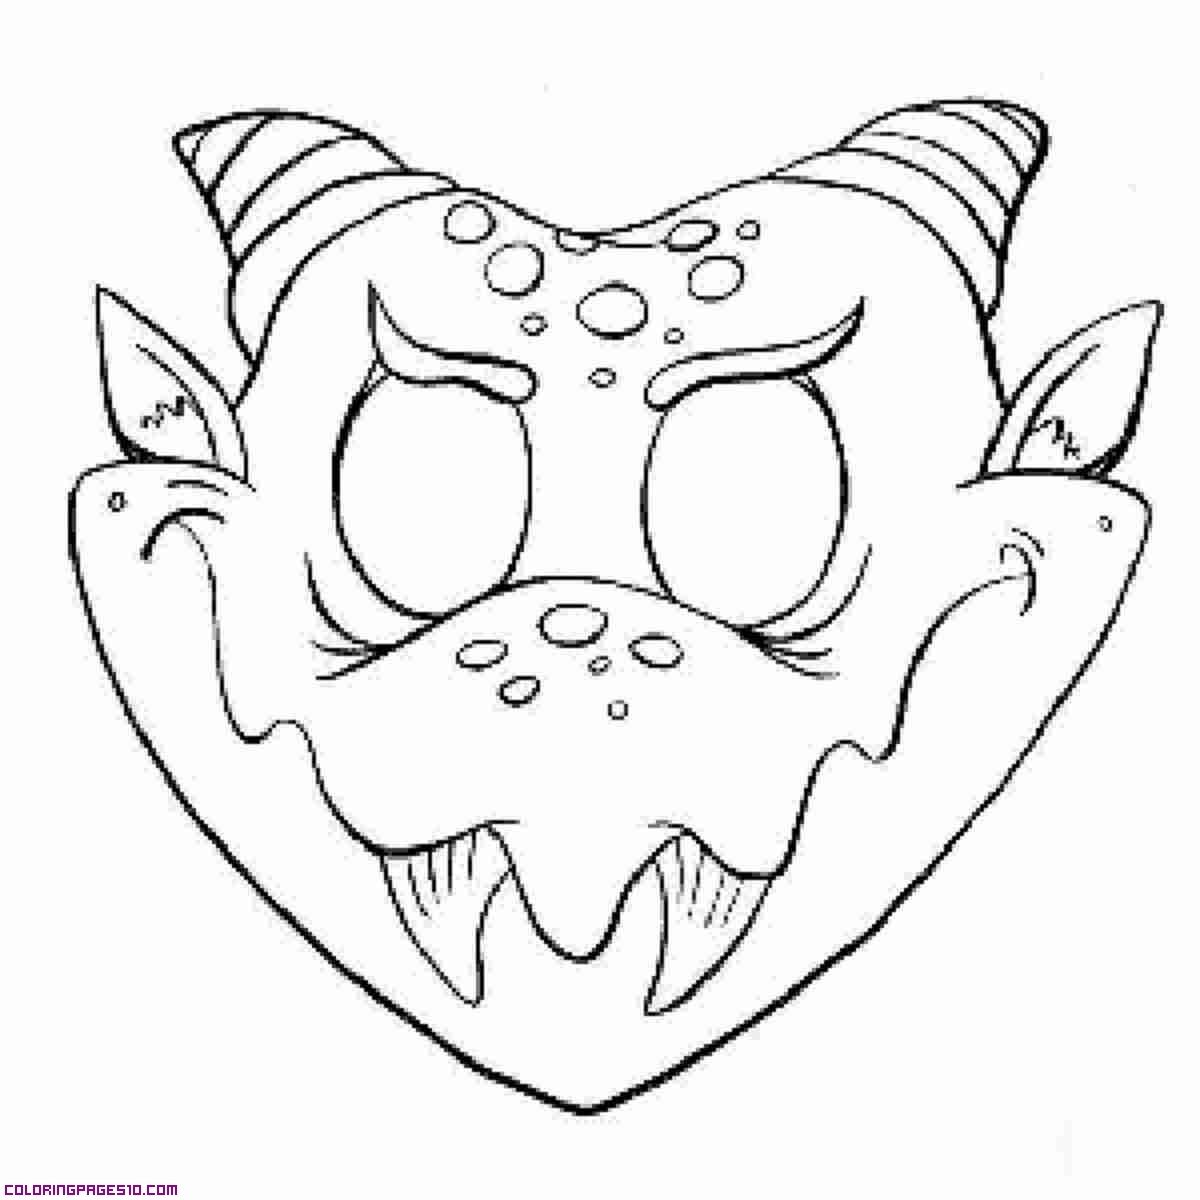 Halloween mask coloring pages ~ Halloween Scary Masks Coloring Pages - Coloring Home